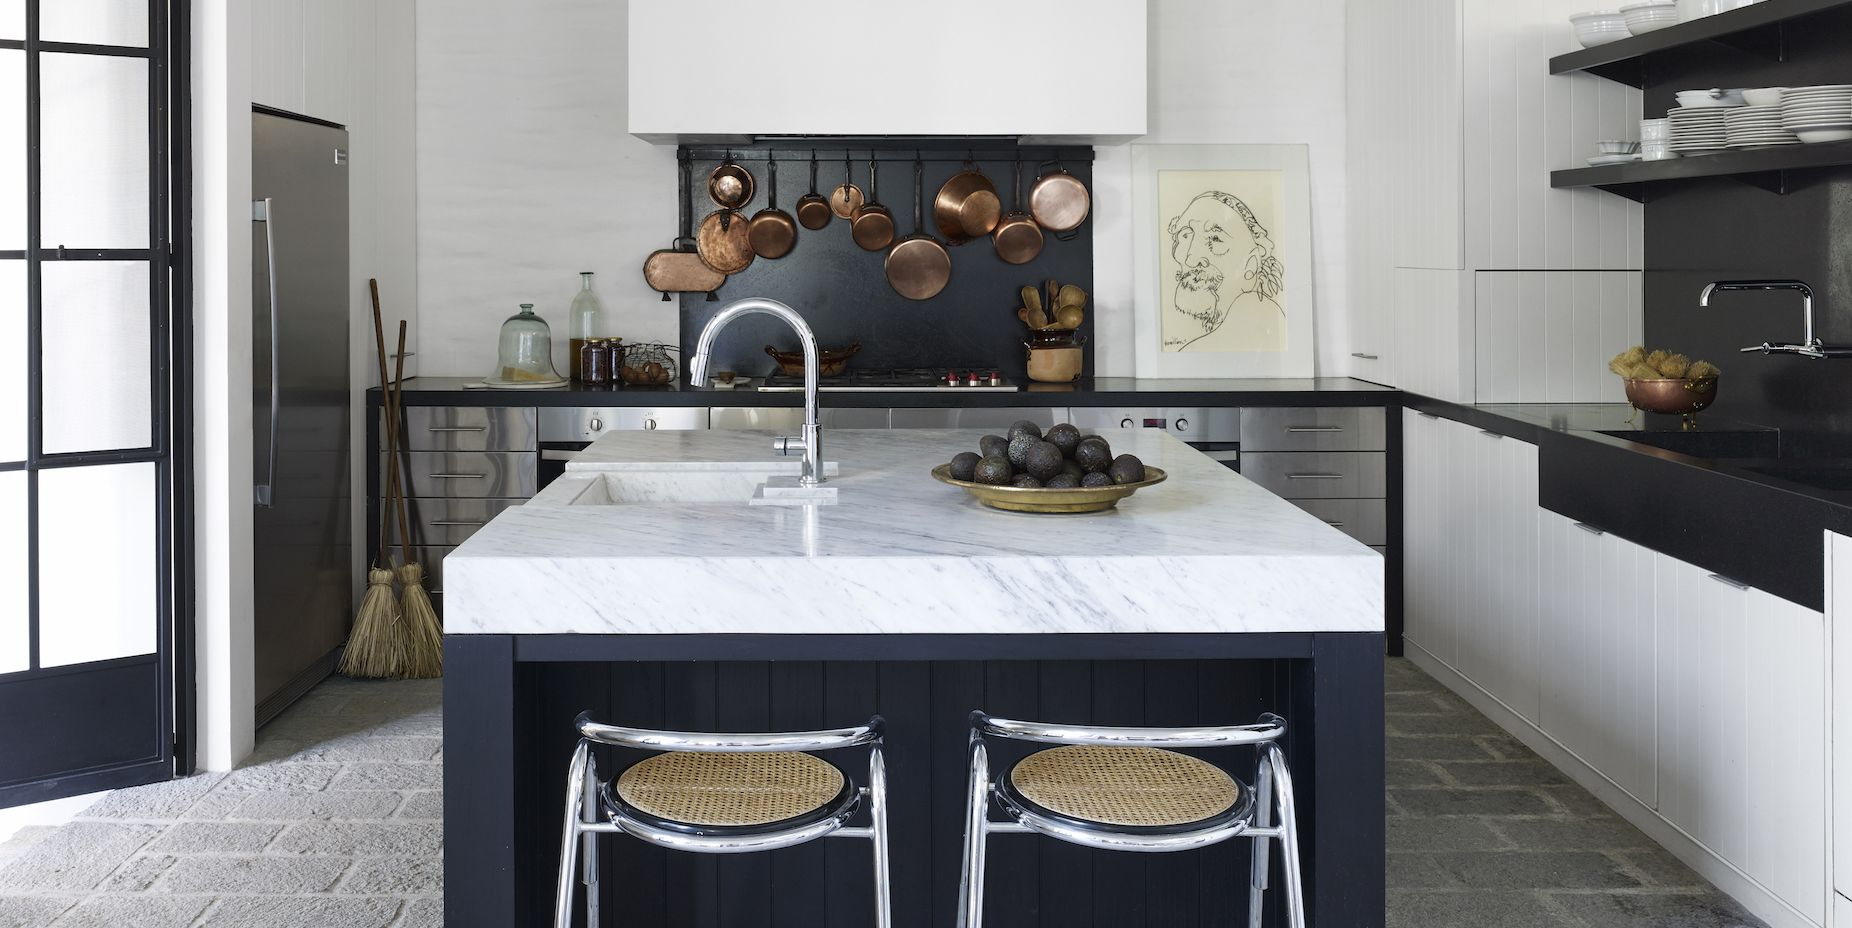 9 Kitchens That Expertly Blend Style And Organization